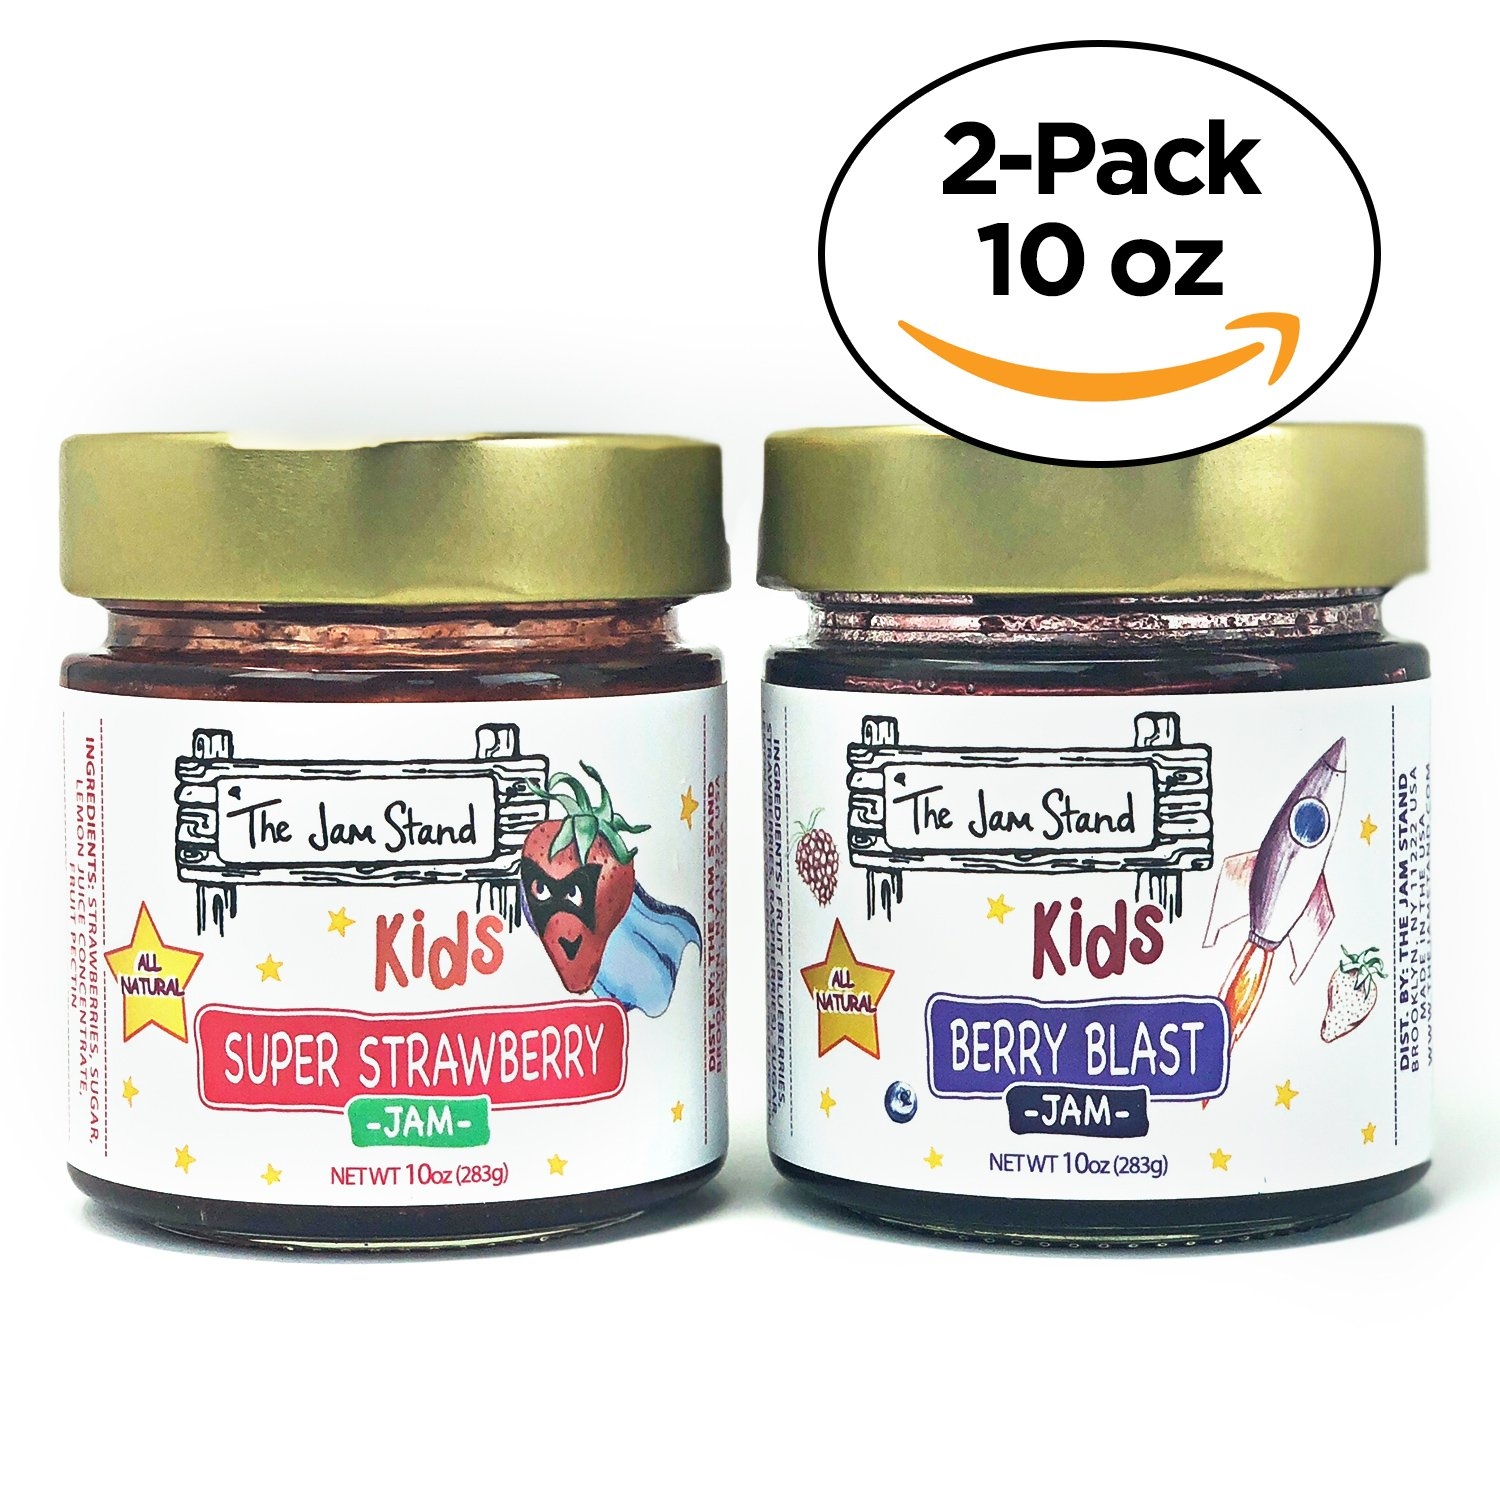 Kids Super Strawberry Jam, 10 oz. and Berry Blast, by The Jam Stand (Pack of 2) by The Jam Stand